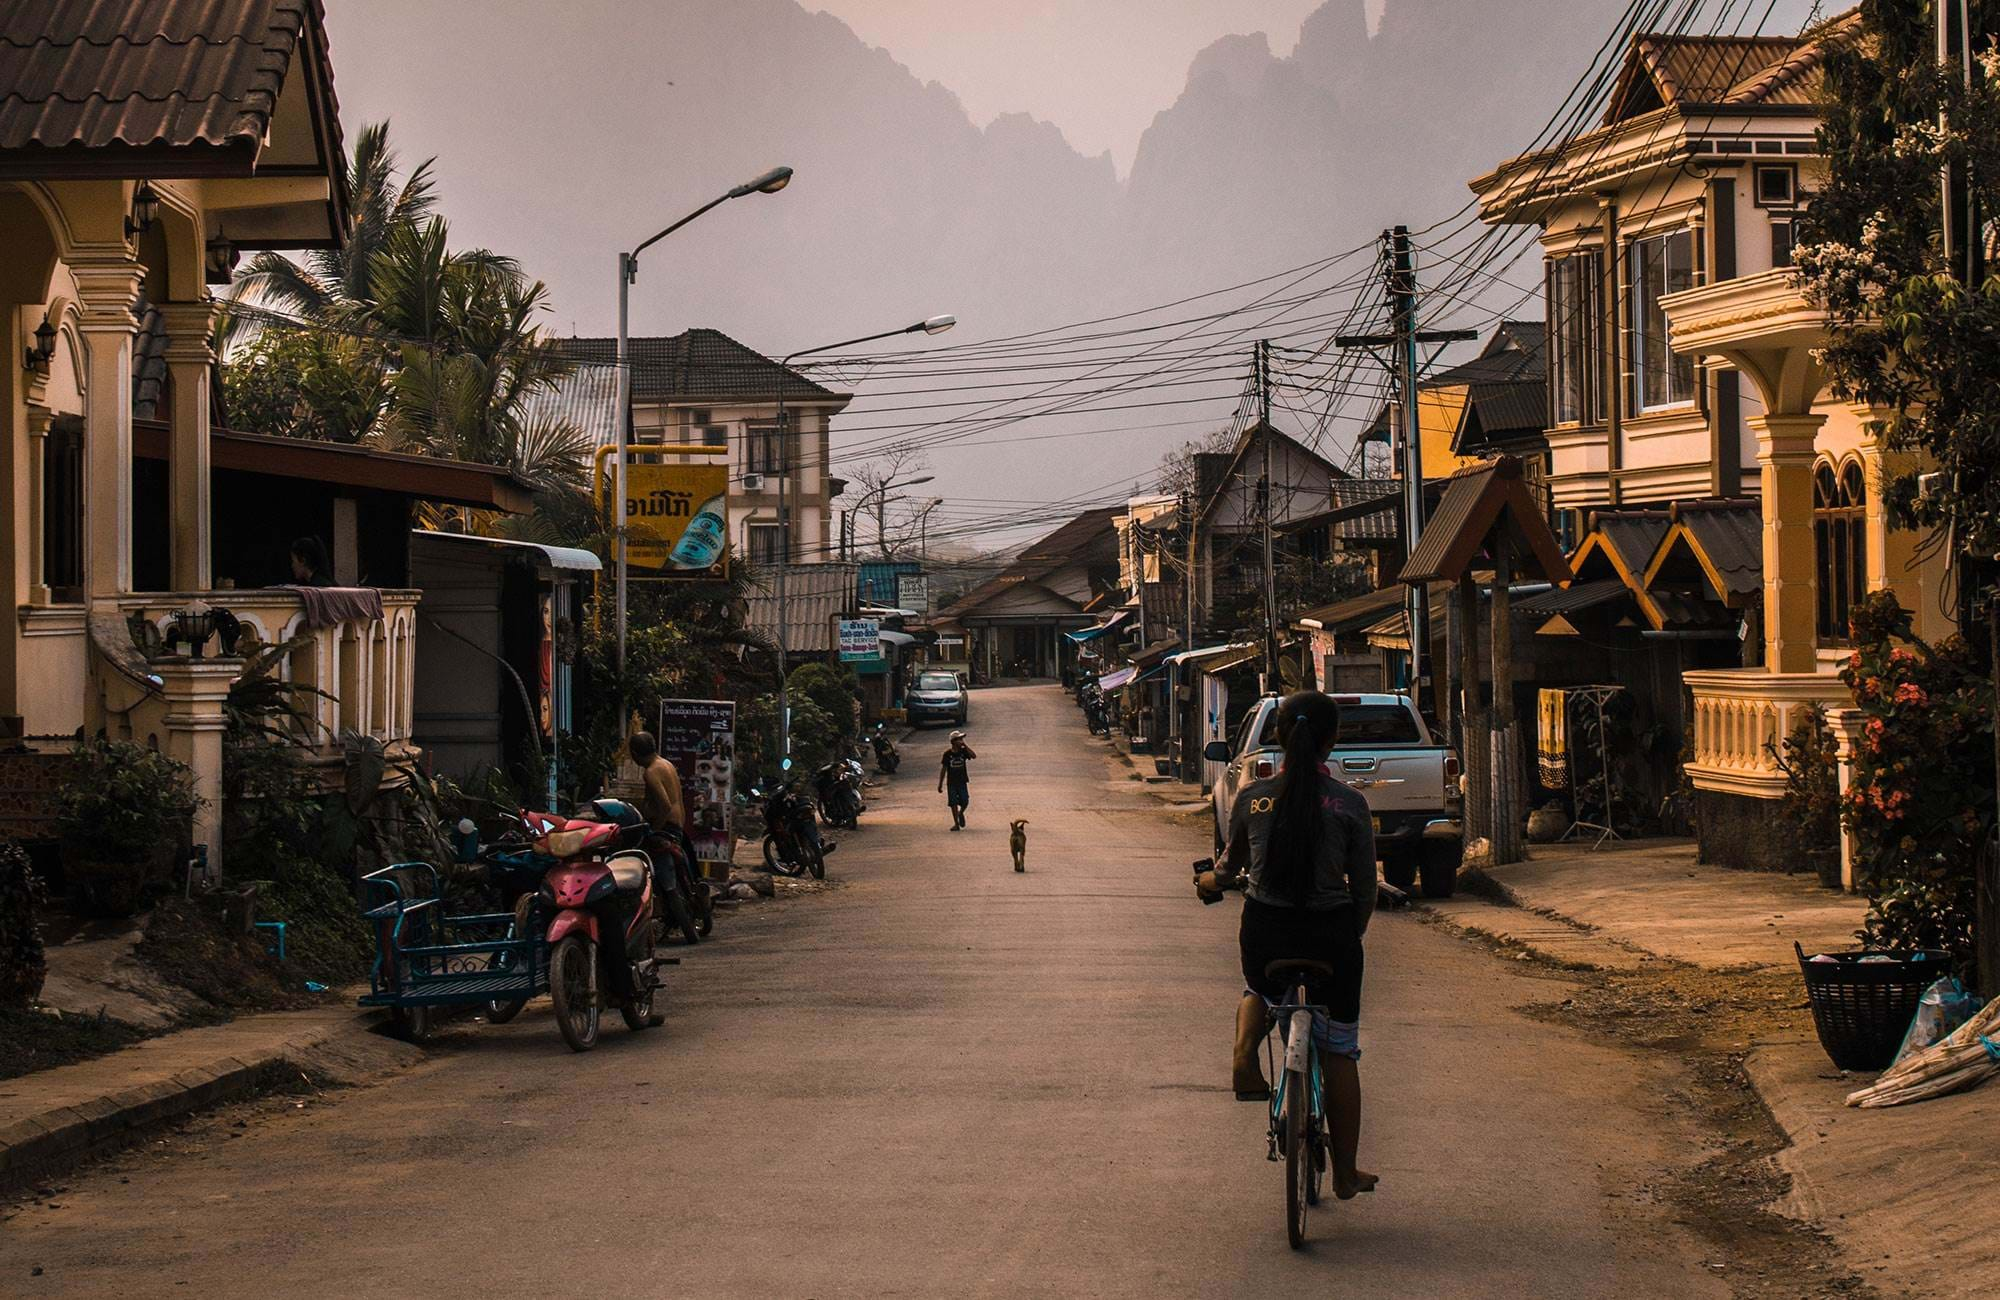 laos-little-village